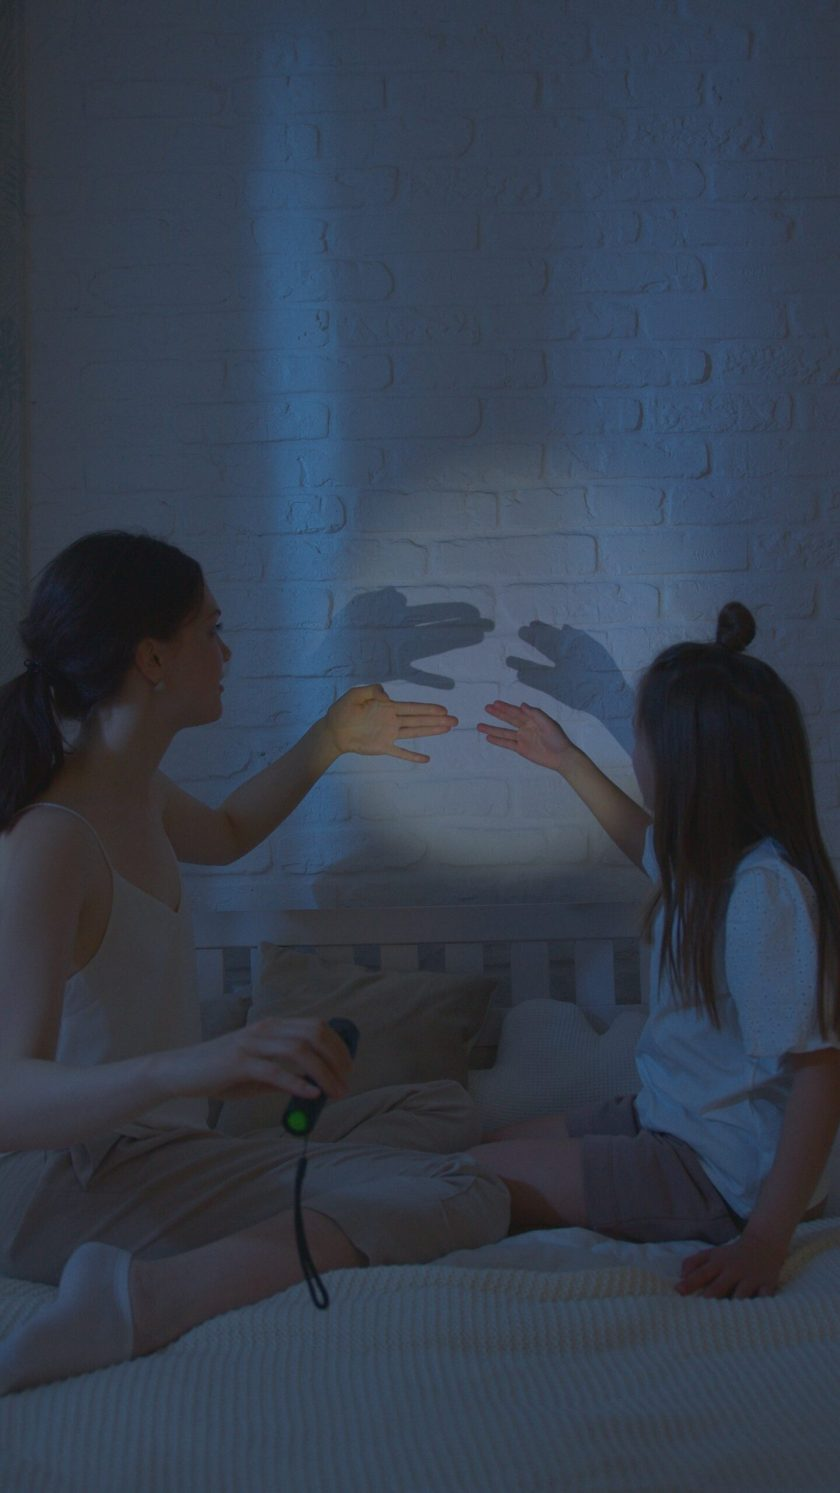 making shadow puppets with hands